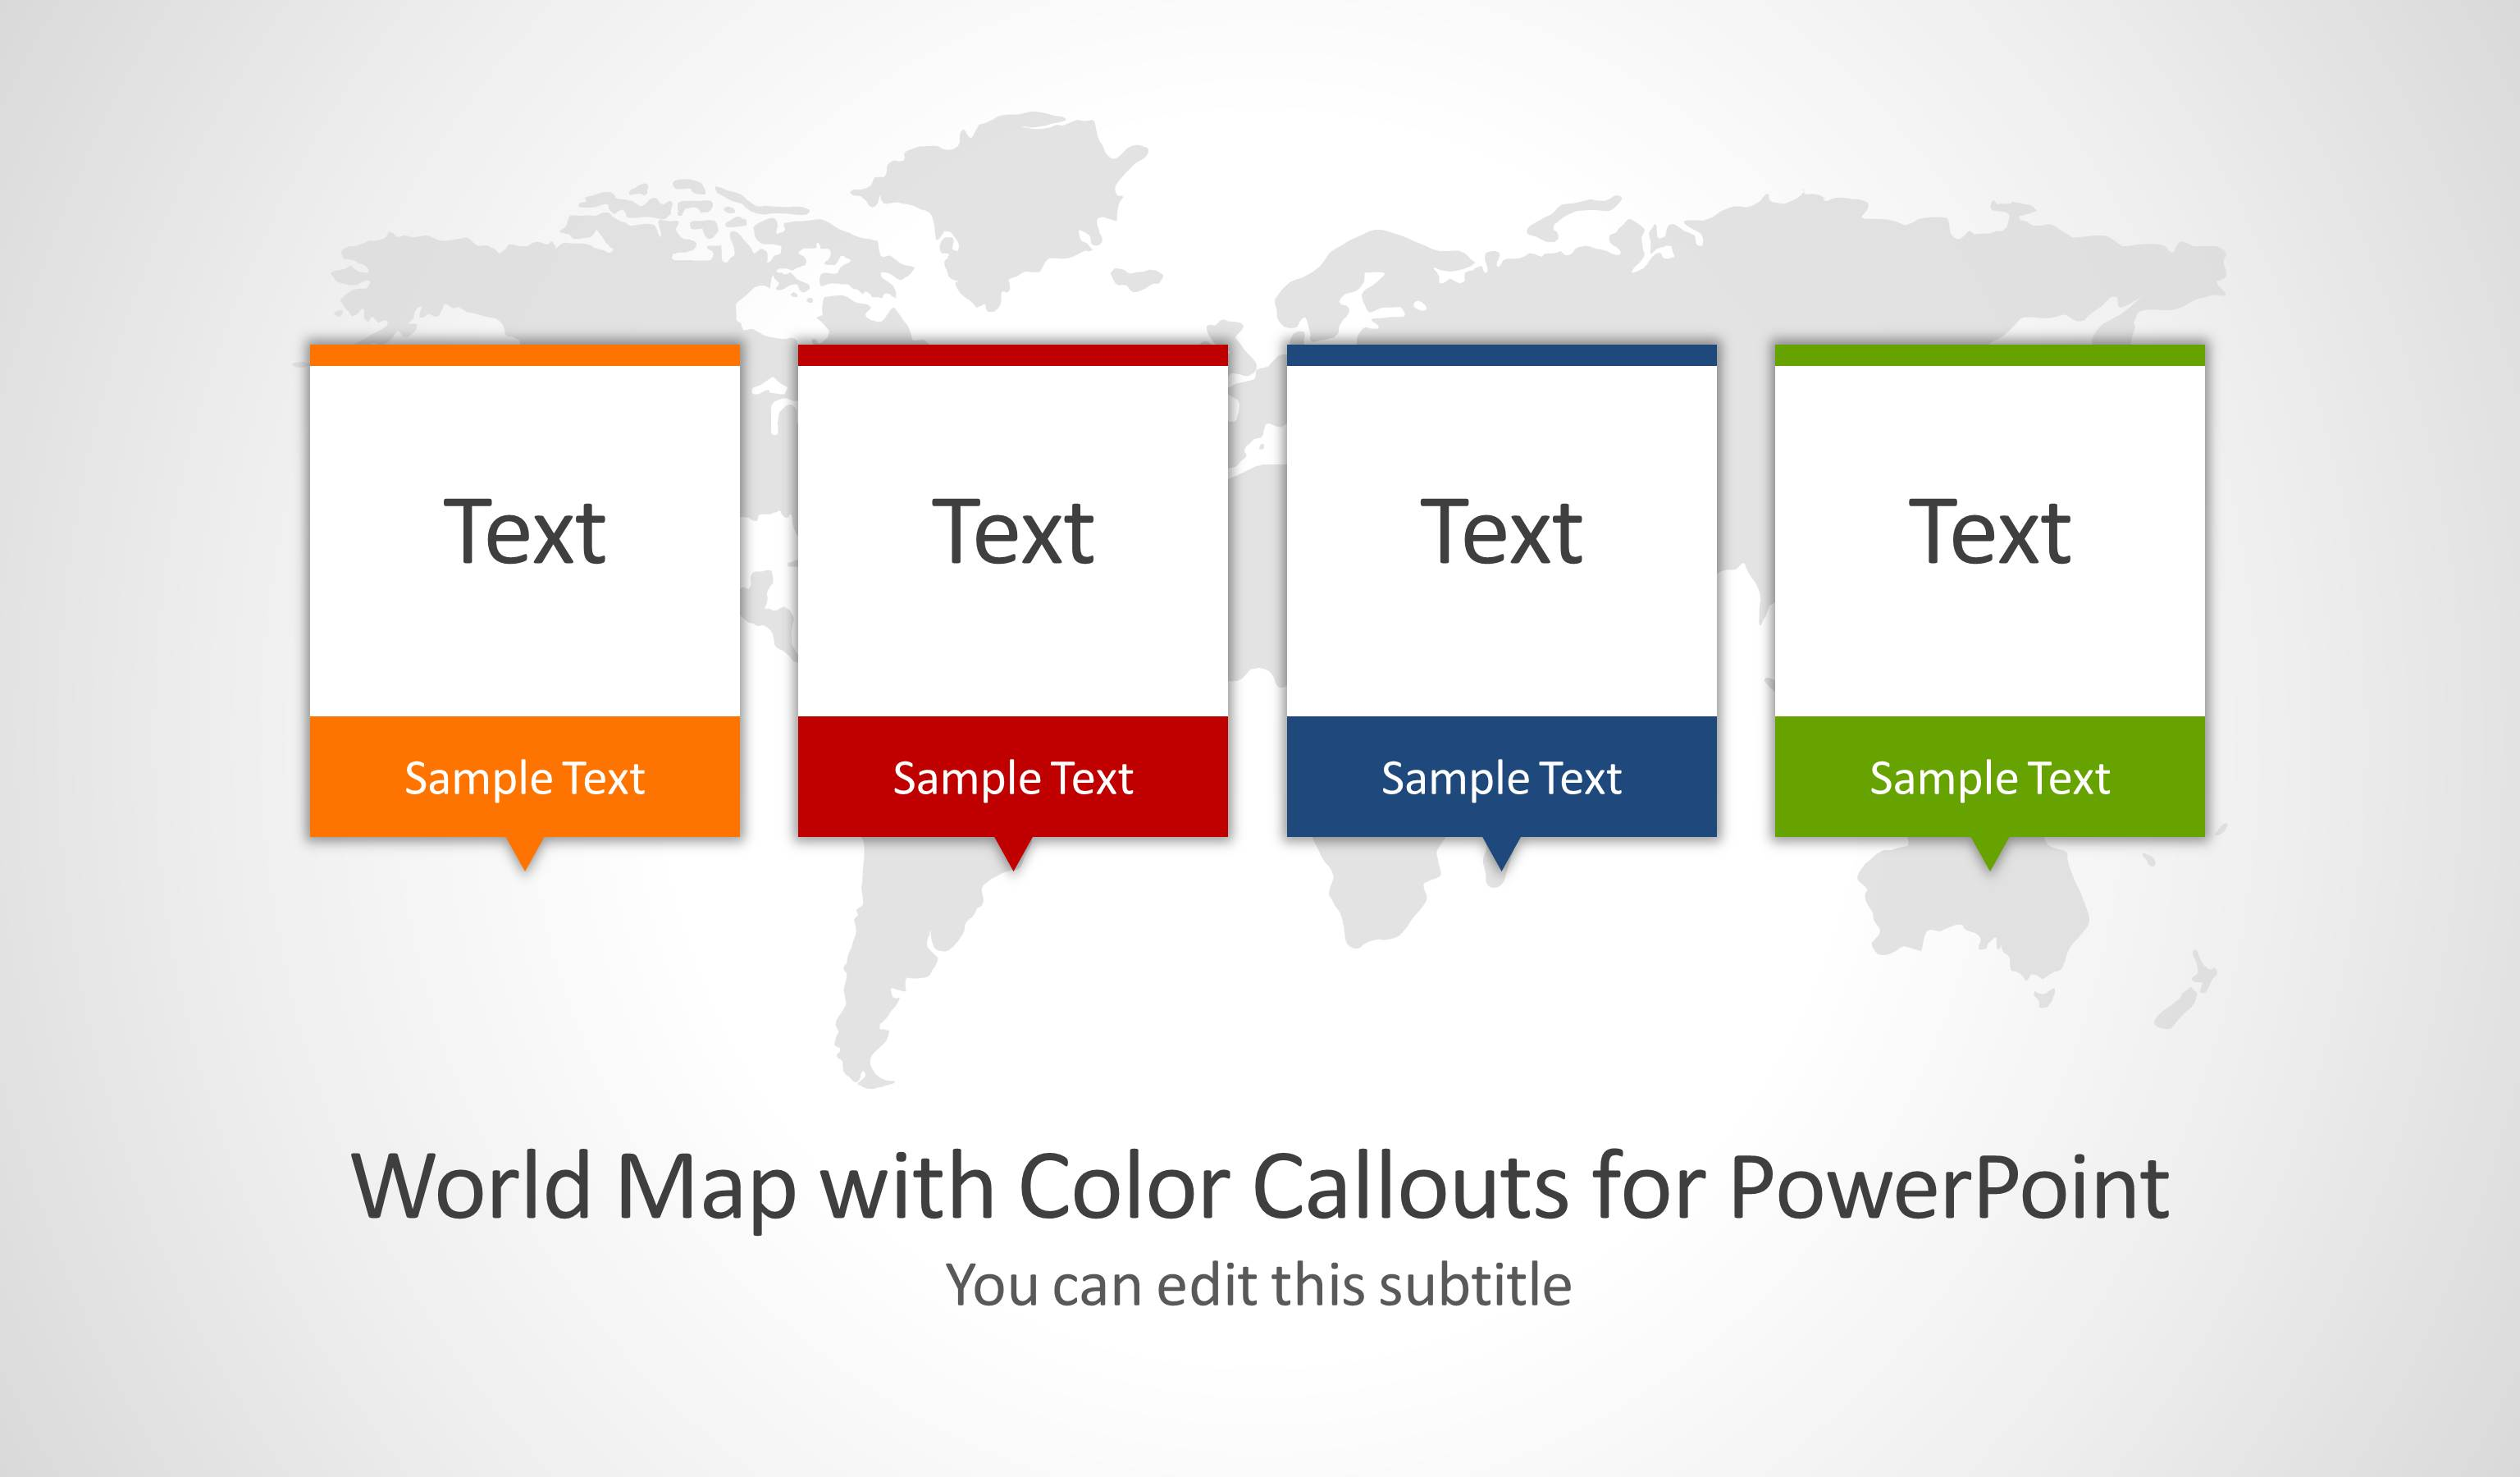 world map with color callouts for powerpoint